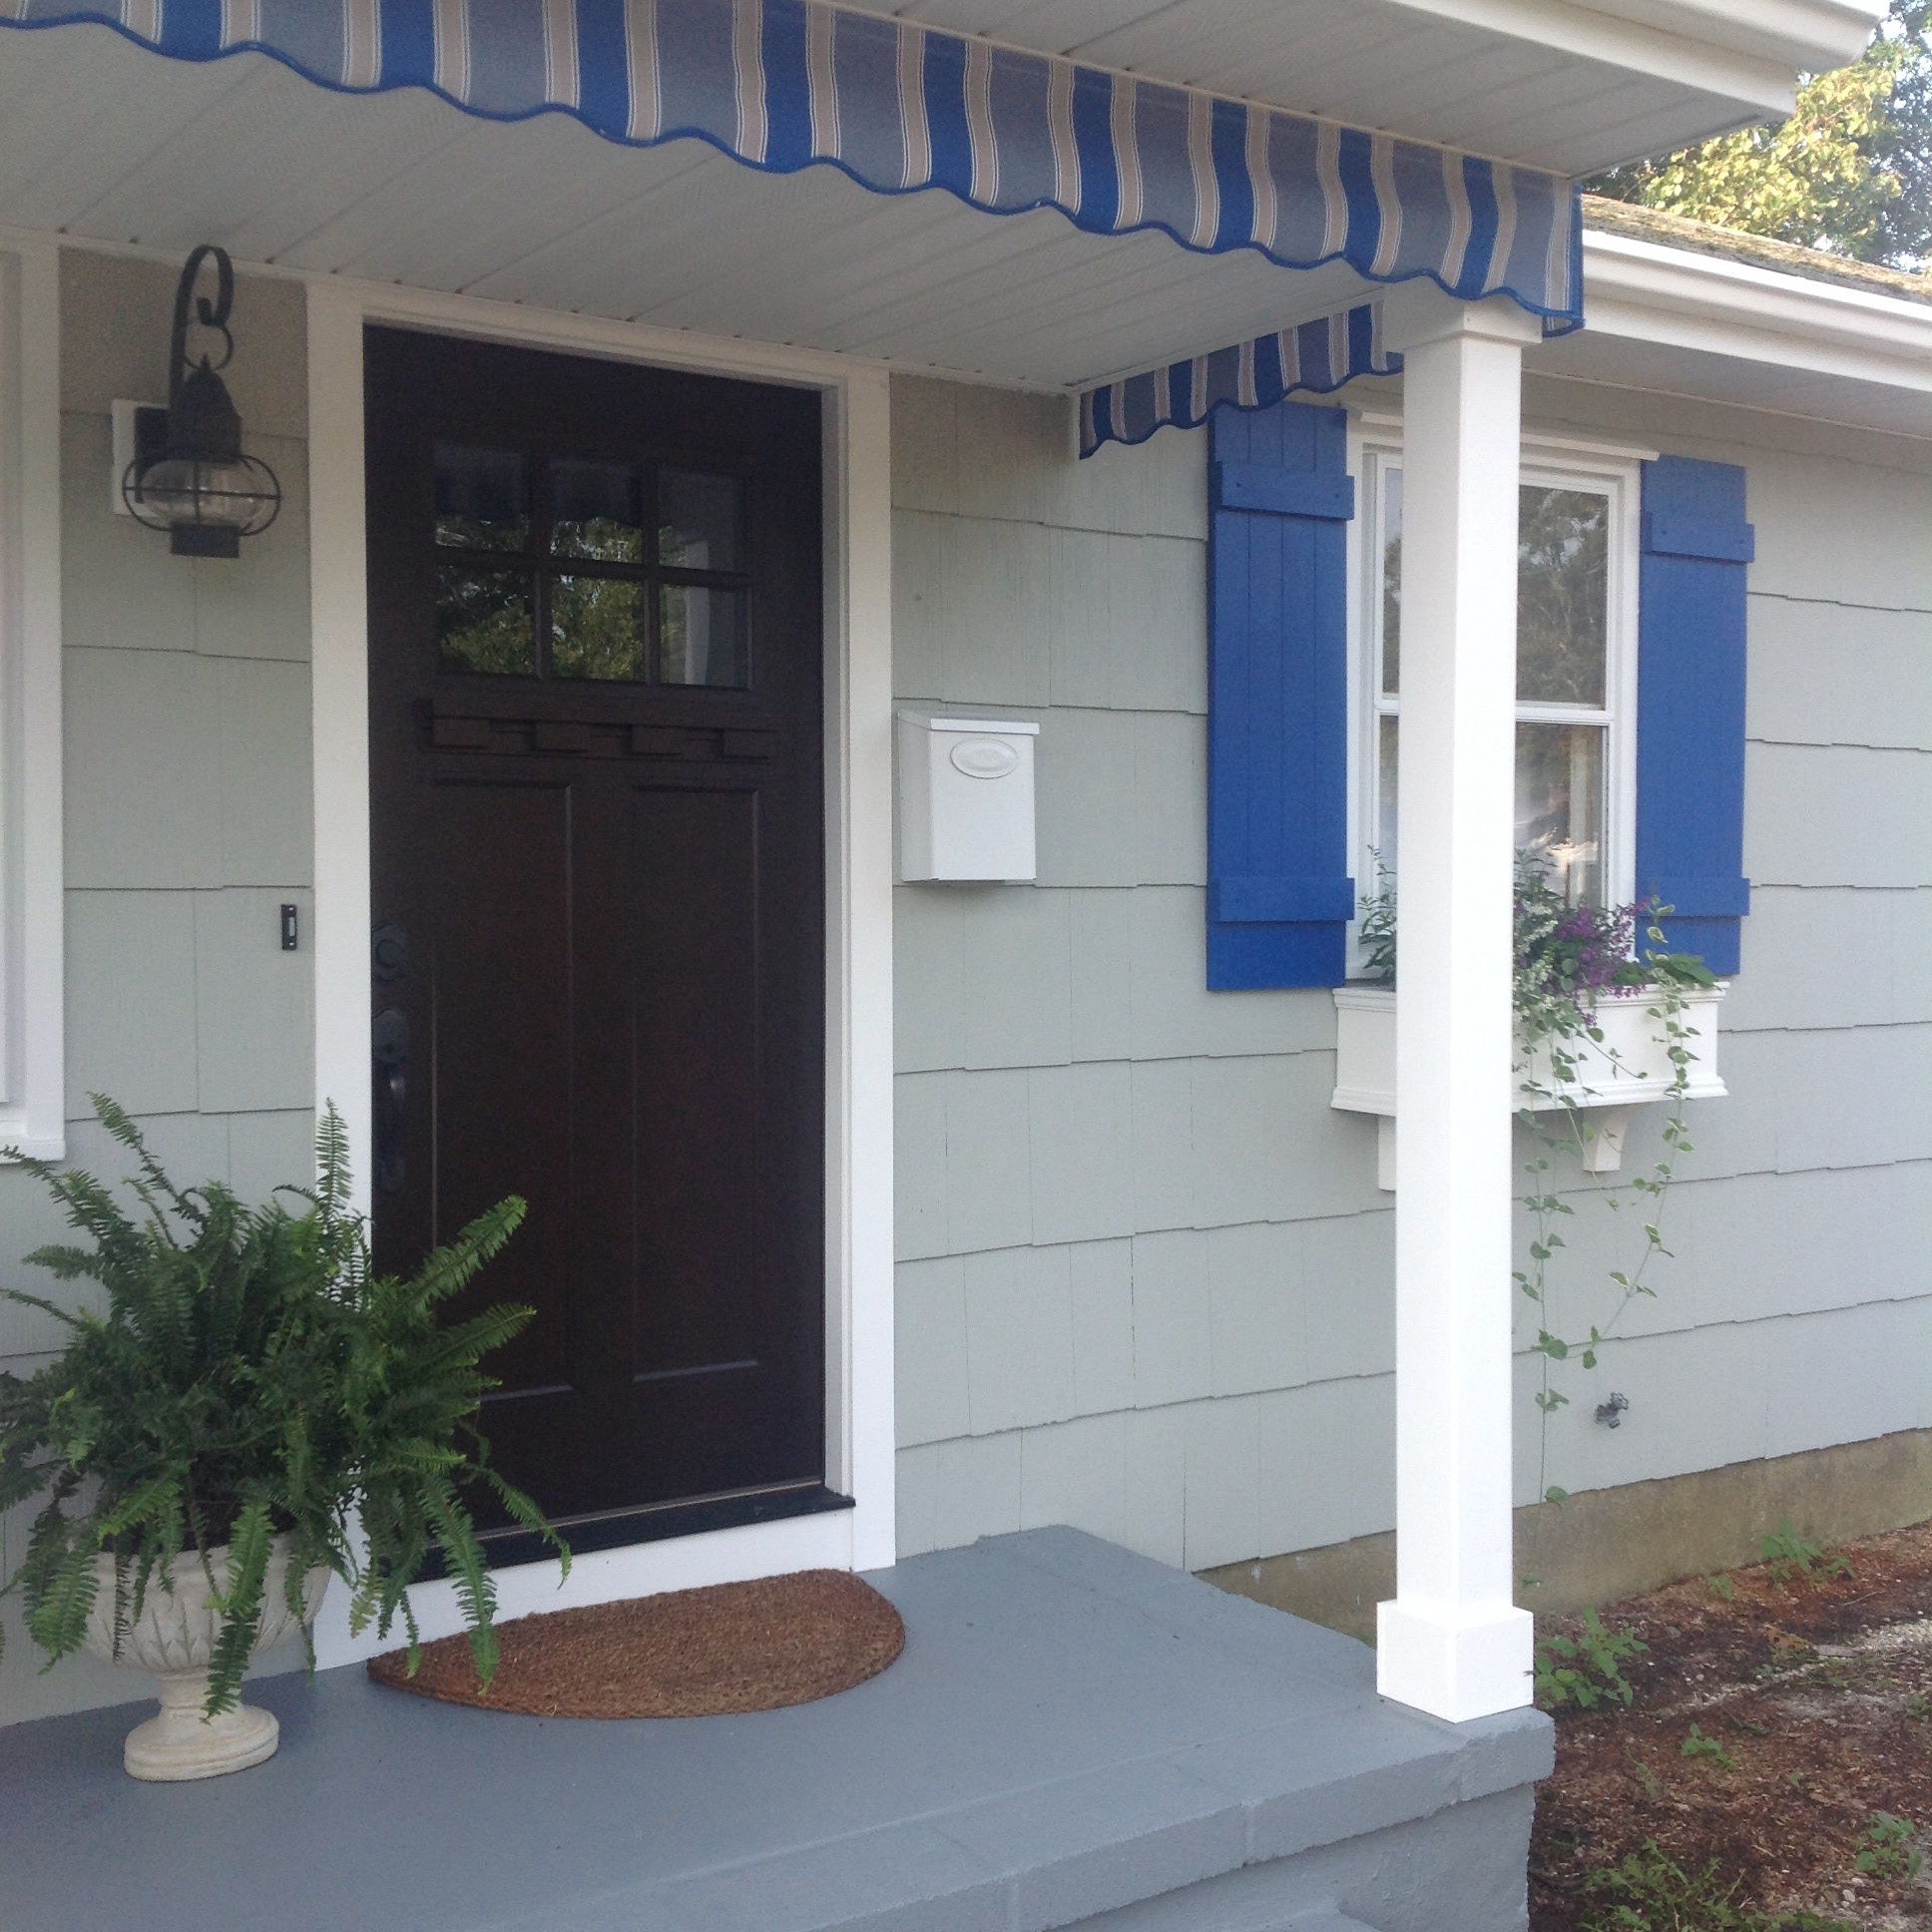 Awnings And Porch Valances Home Spun Style